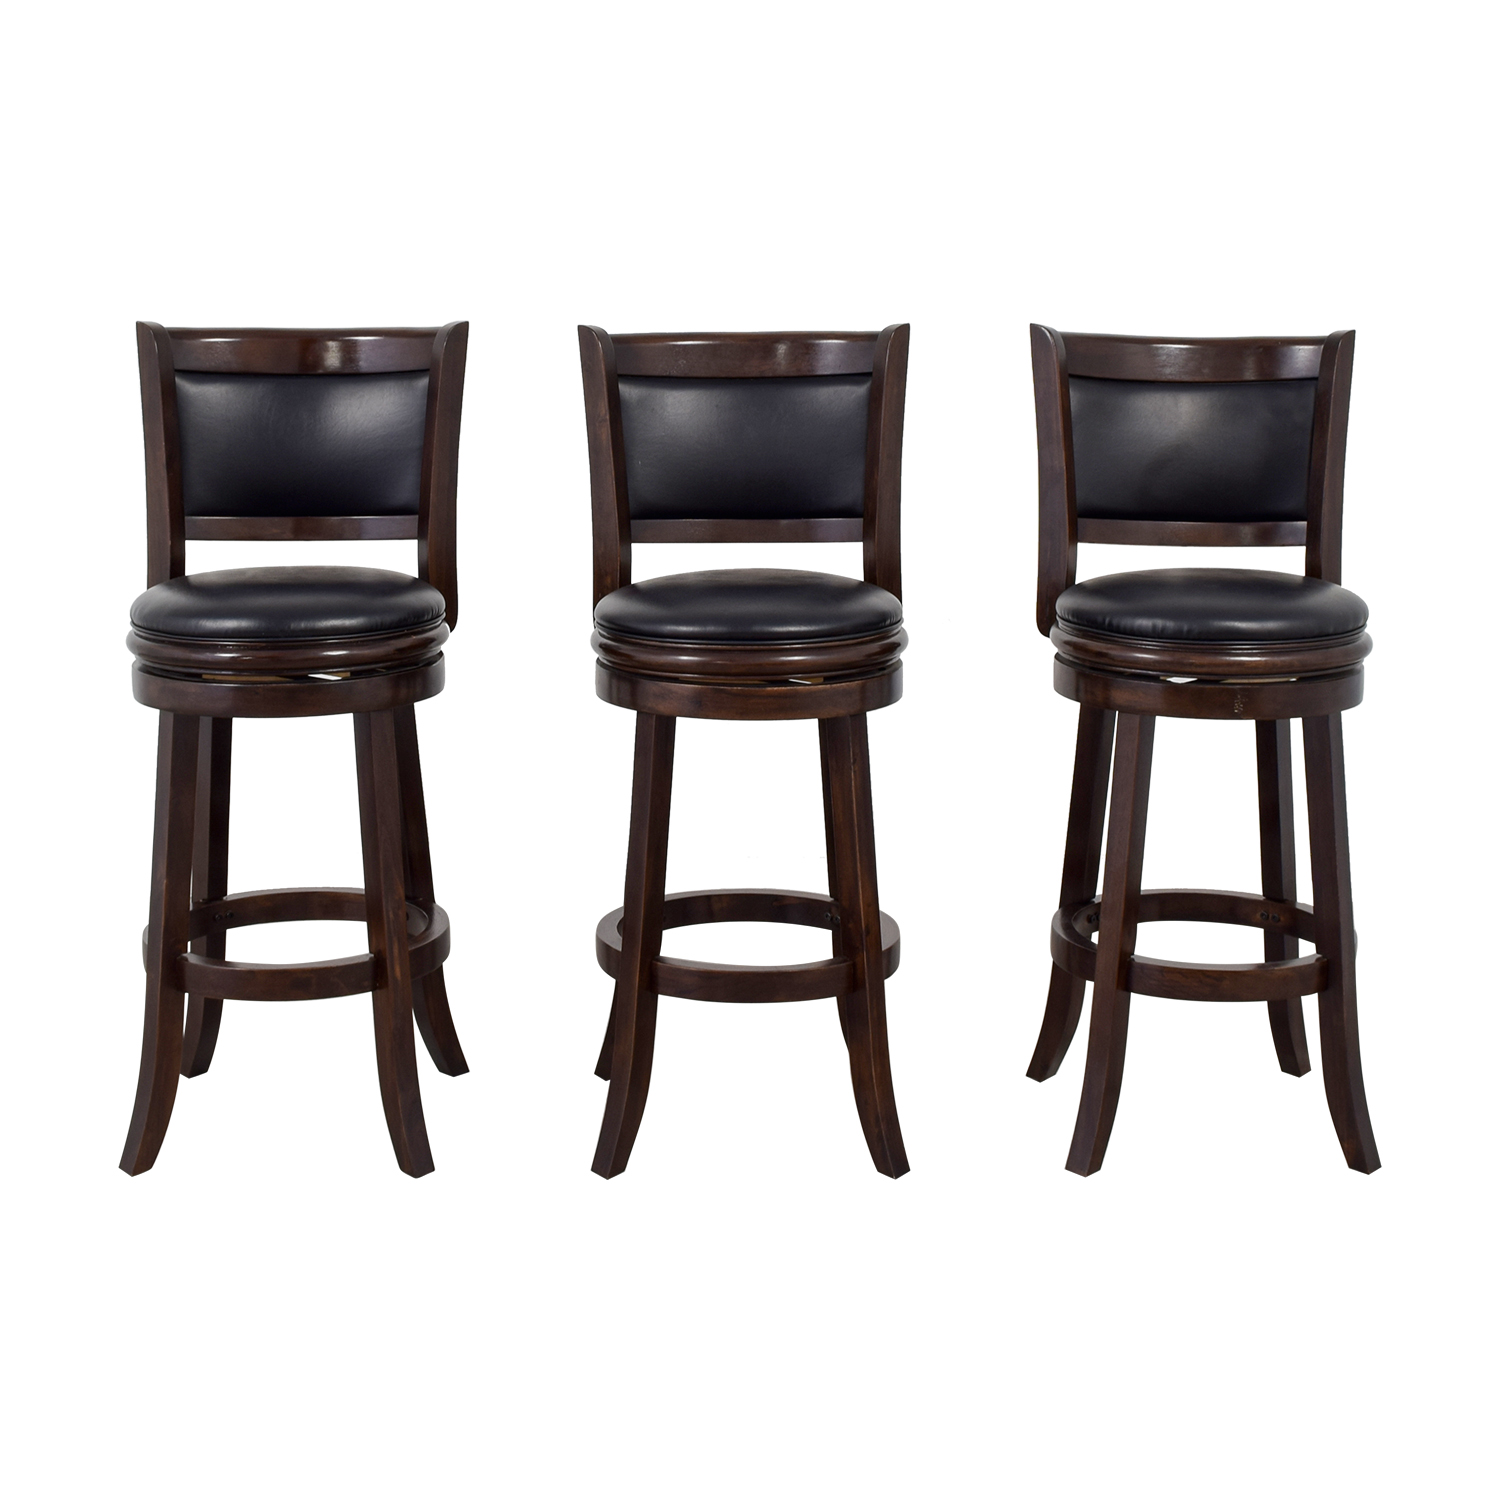 Raymour & Flanigan Raymour & Flanigan Bar Stools Price